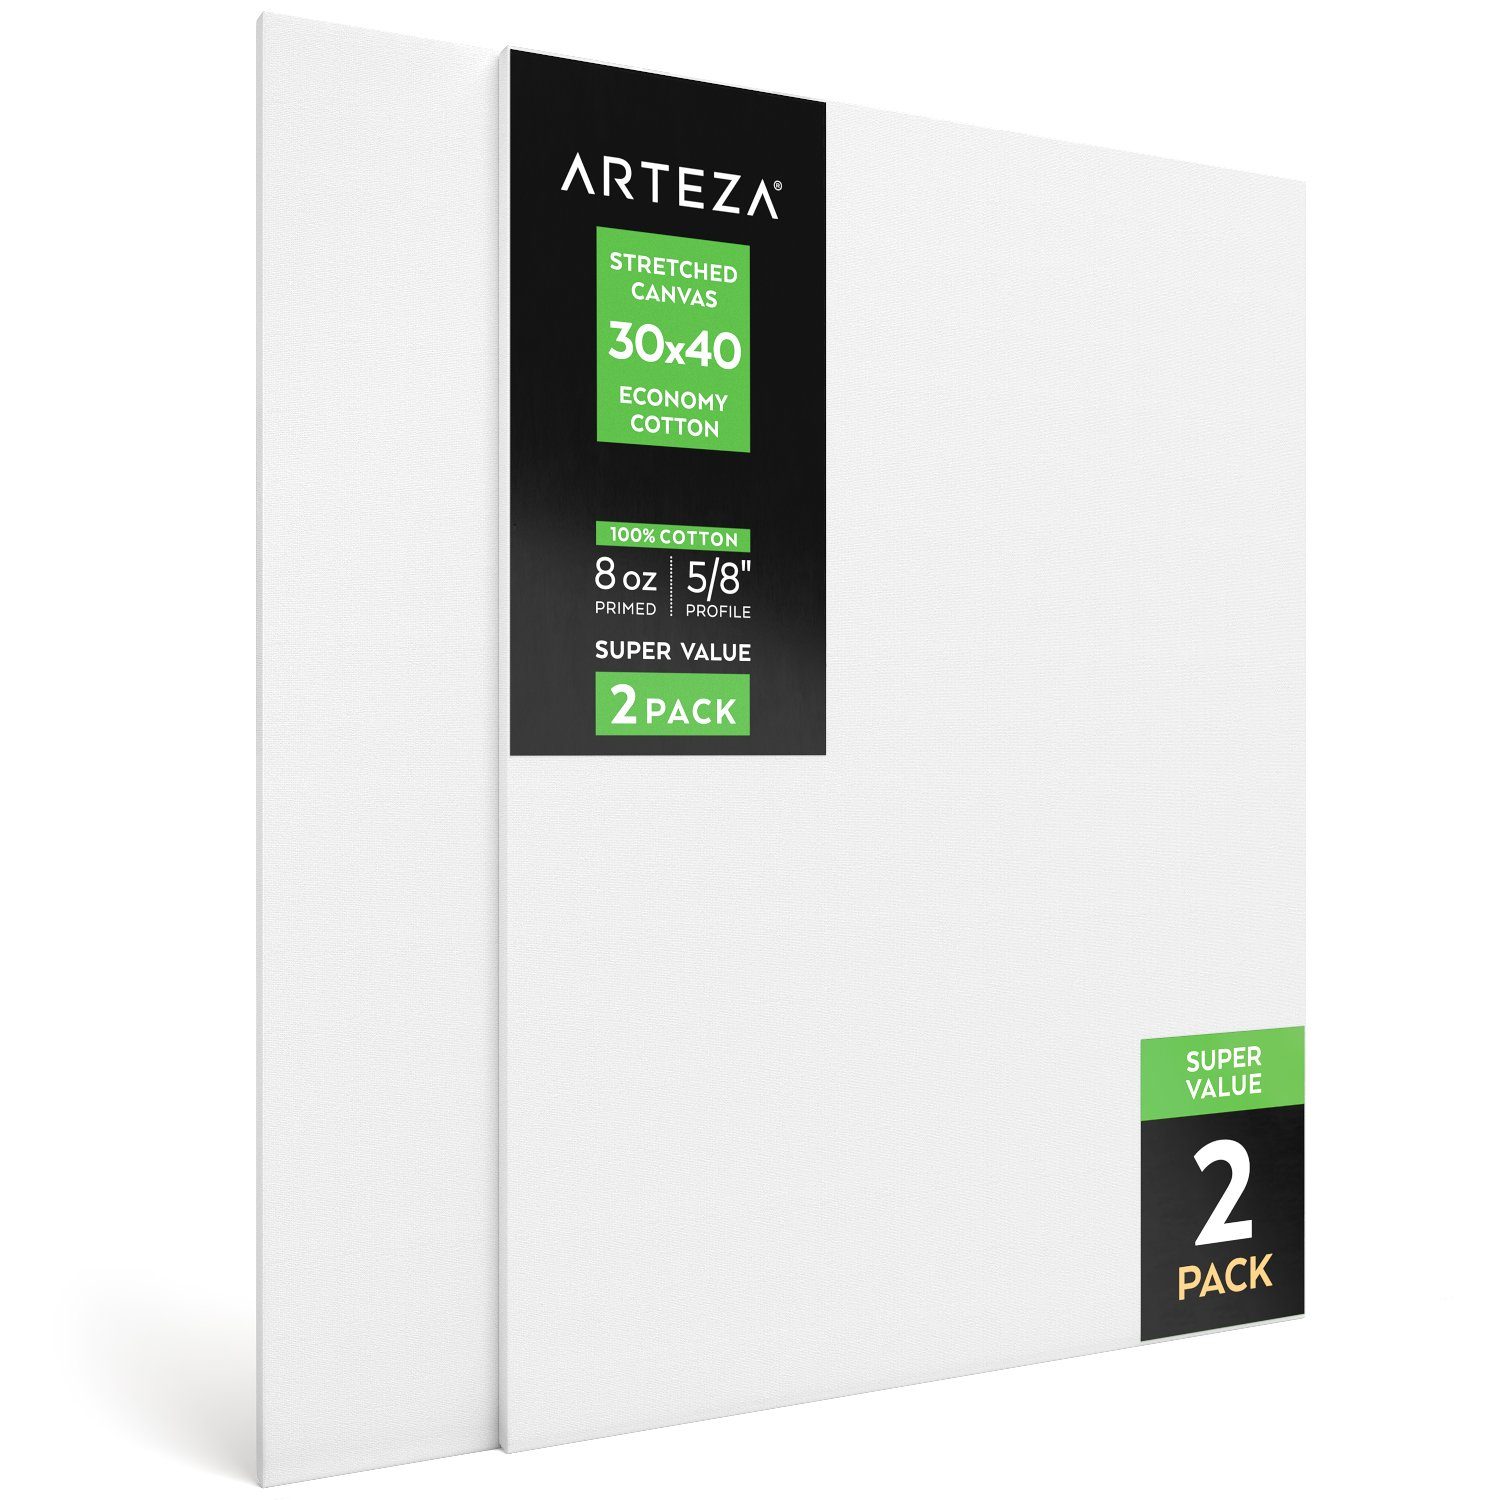 Arteza 30x40'' Stretched White Blank Canvas, Bulk Pack of 2, Primed, 100% Cotton for Painting, Acrylic Pouring, Oil Paint & Wet Art Media, Canvases for Professional Artist, Hobby Painters & Beginner by ARTEZA